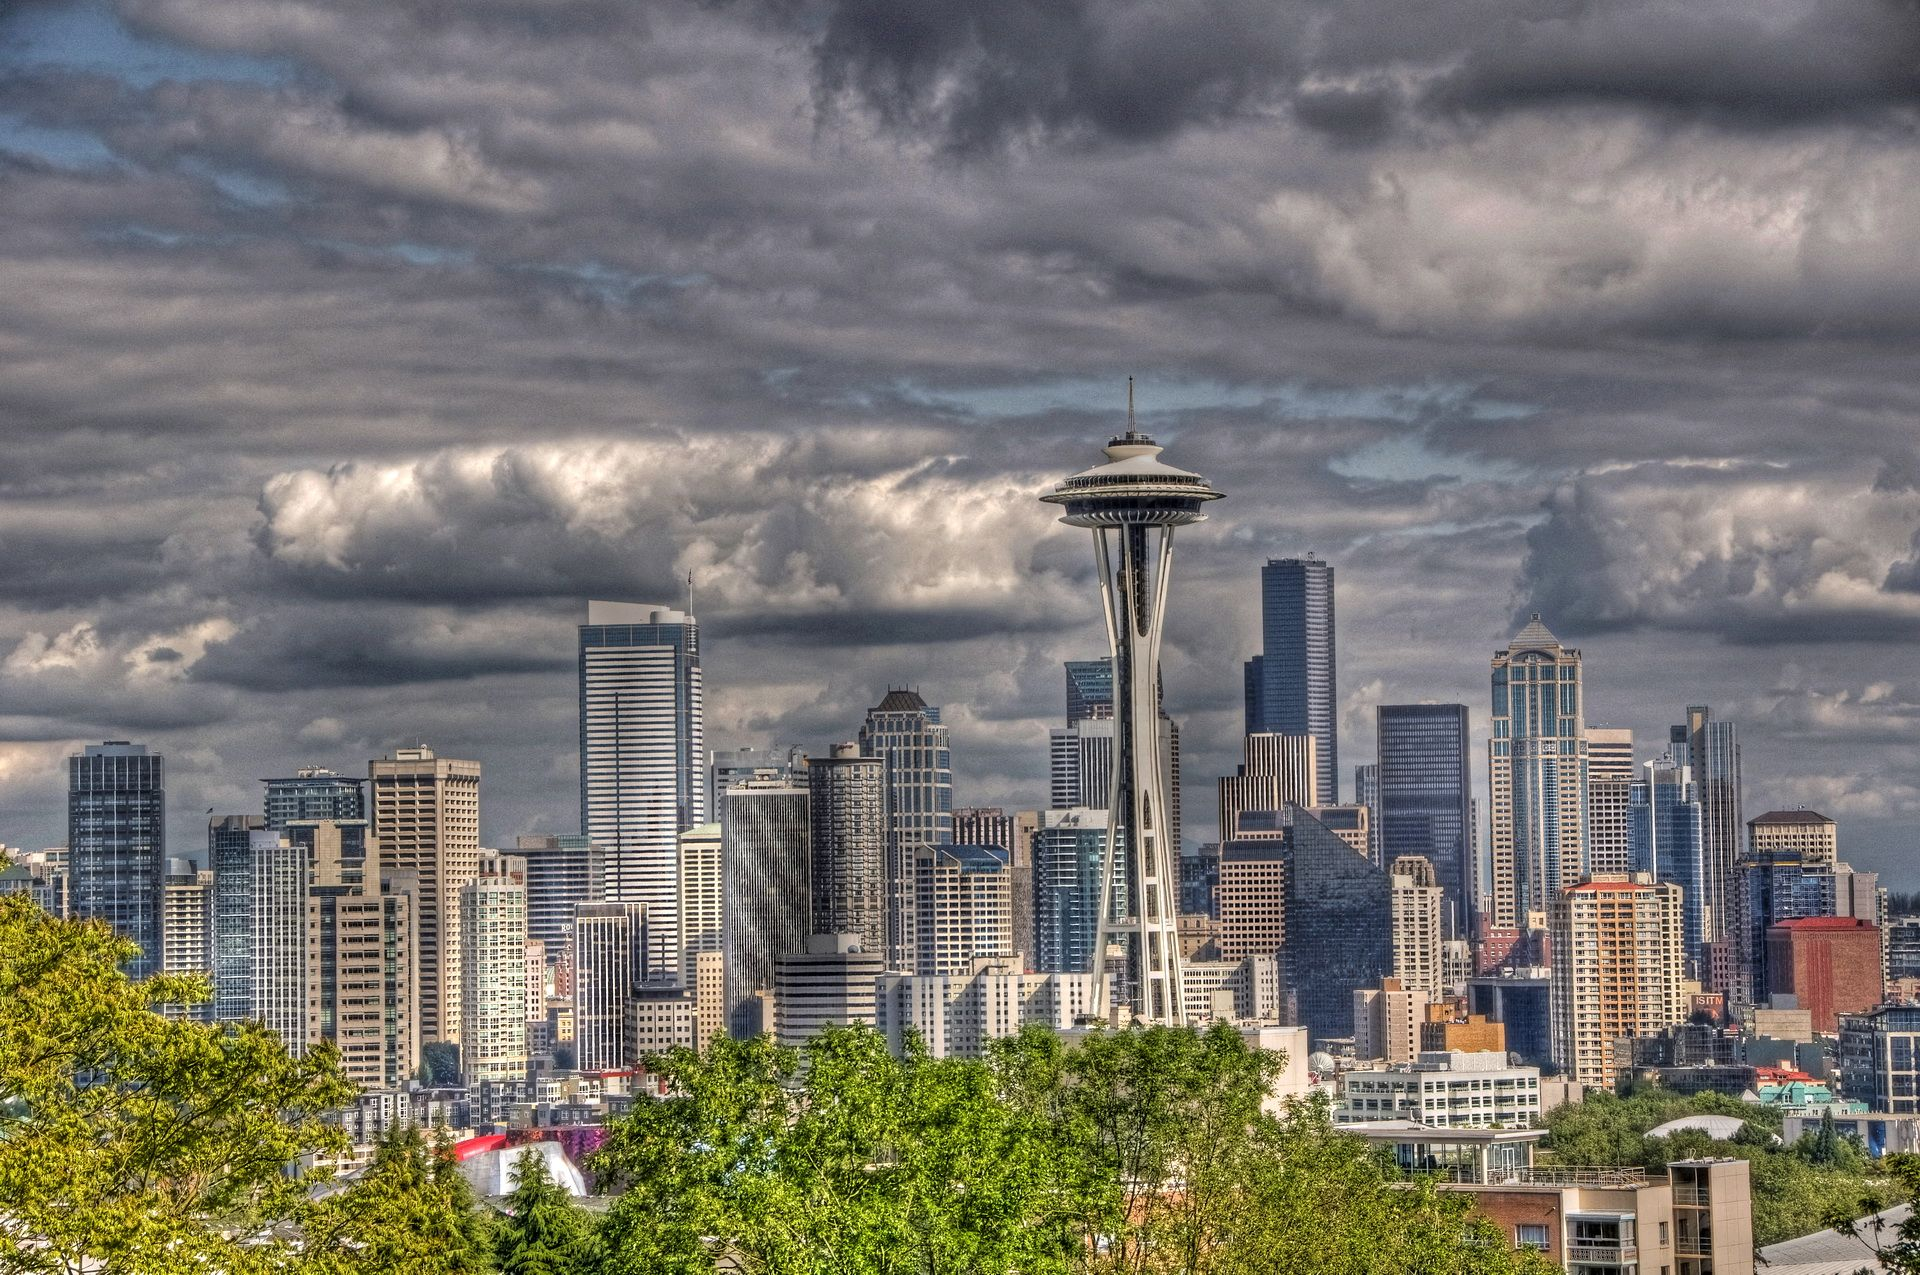 Seattle Computer Wallpapers Desktop Backgrounds 1920x1275